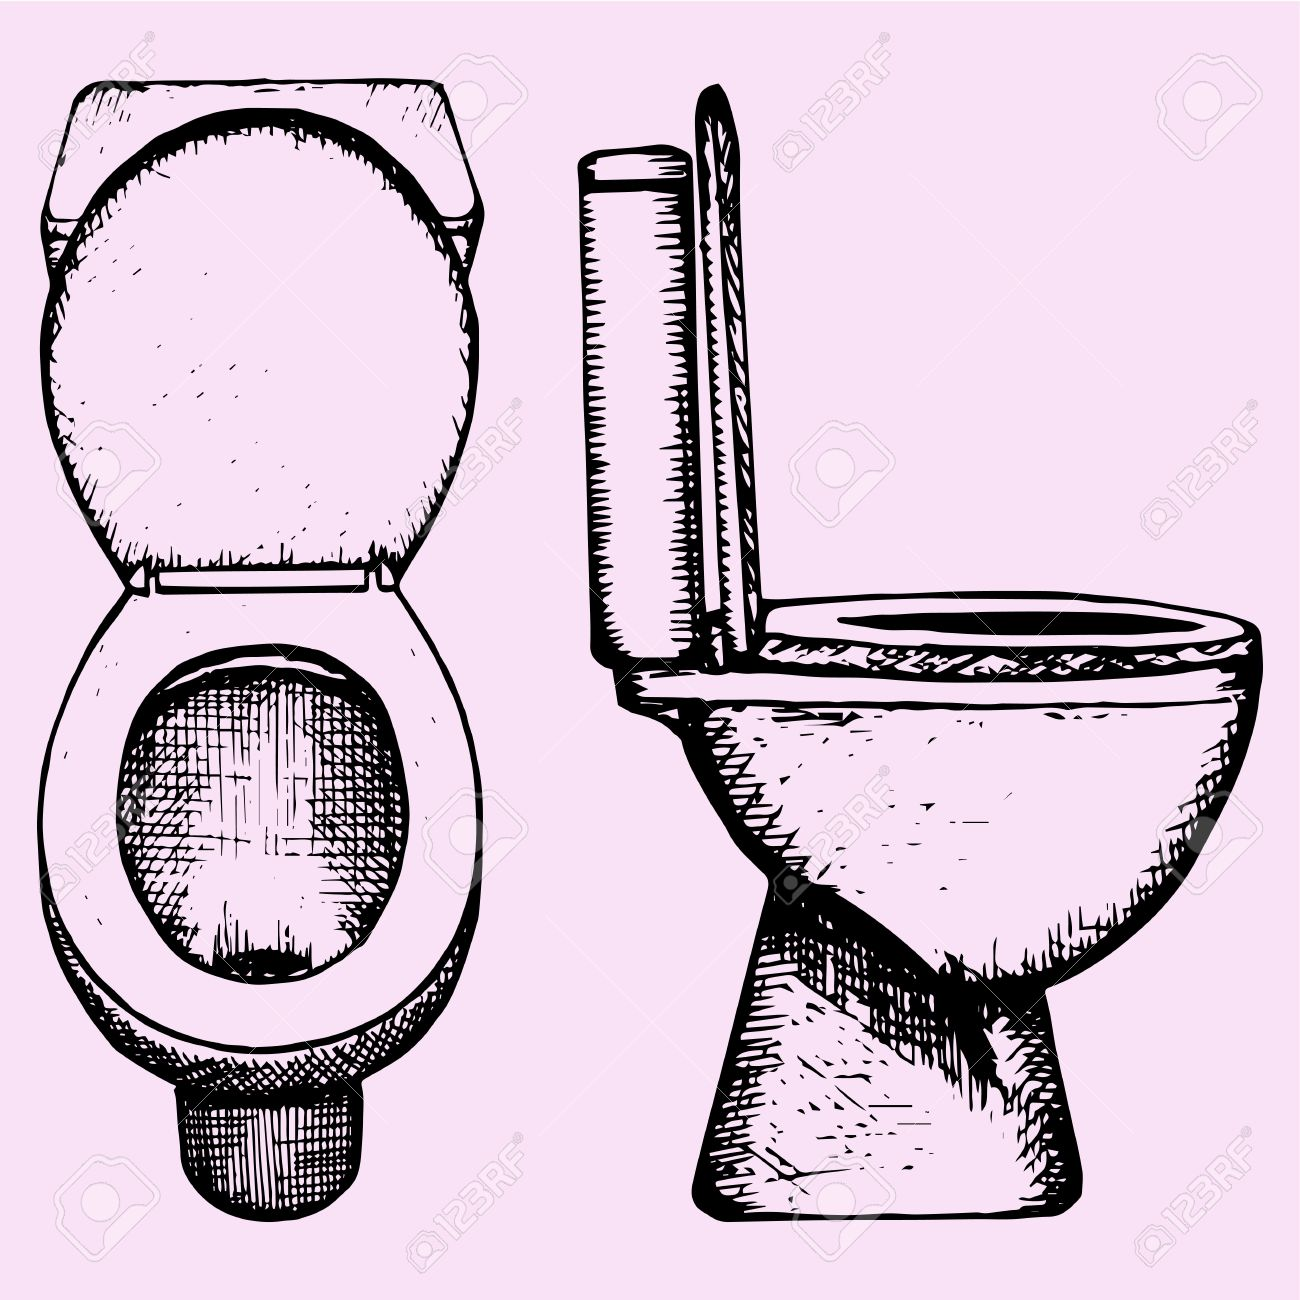 Set Ceramic Toilet Bowl In Bathroom Hand Drawn Doodle Style Sketch Illustration Stock